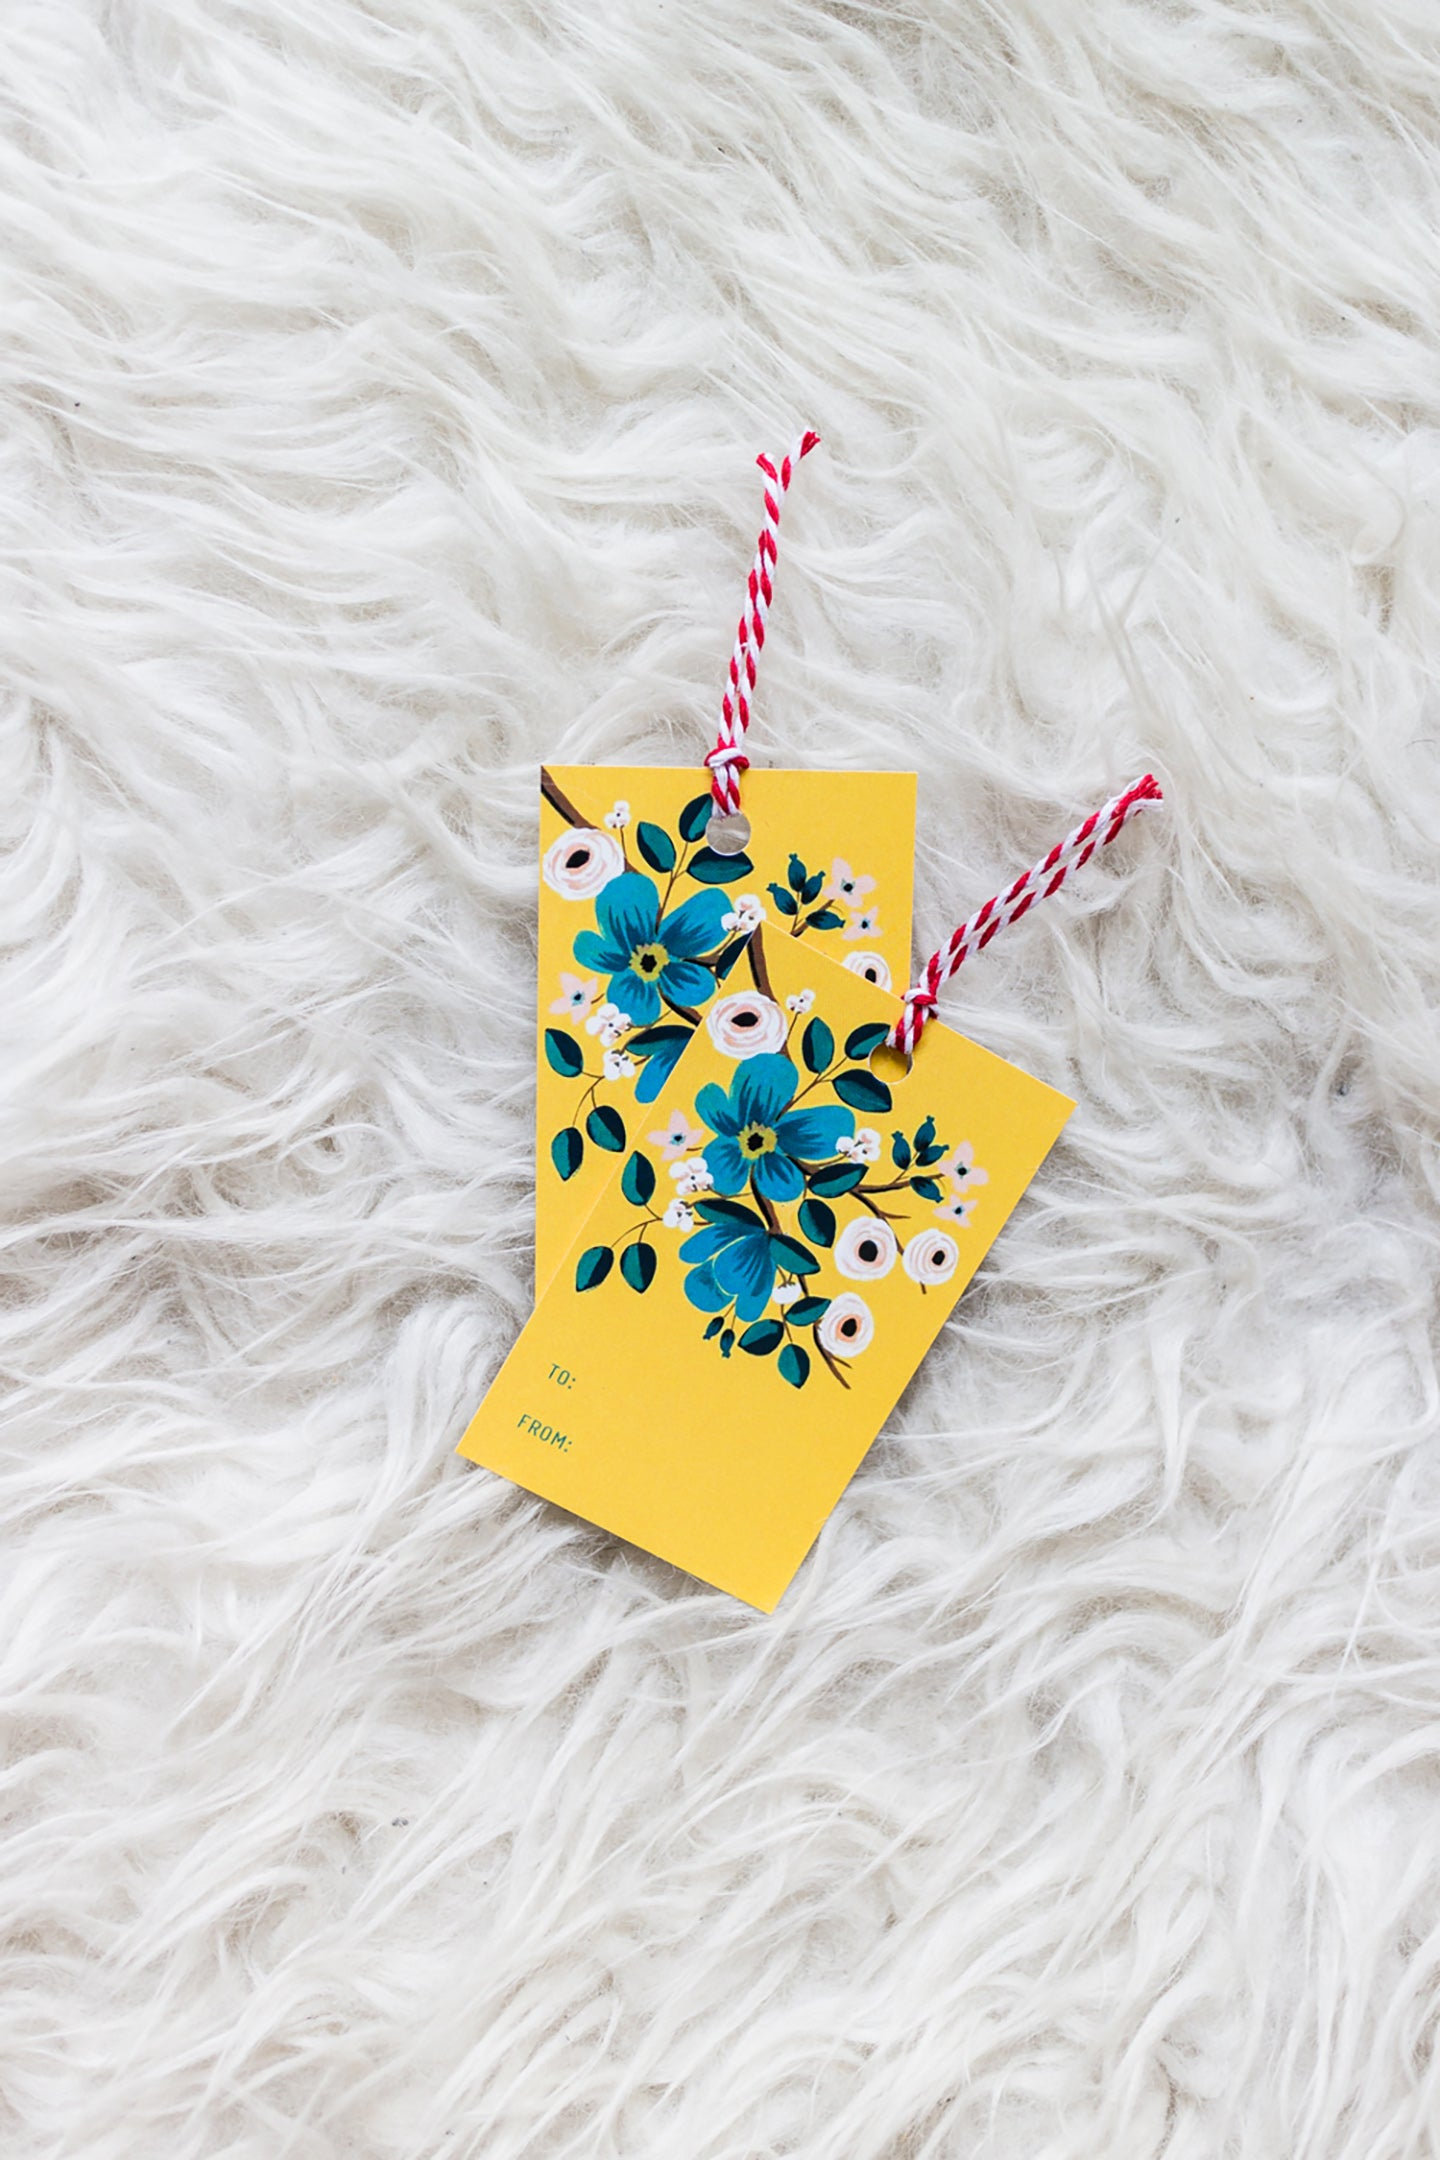 New! Amp Up Your Gifts with Gift Tags